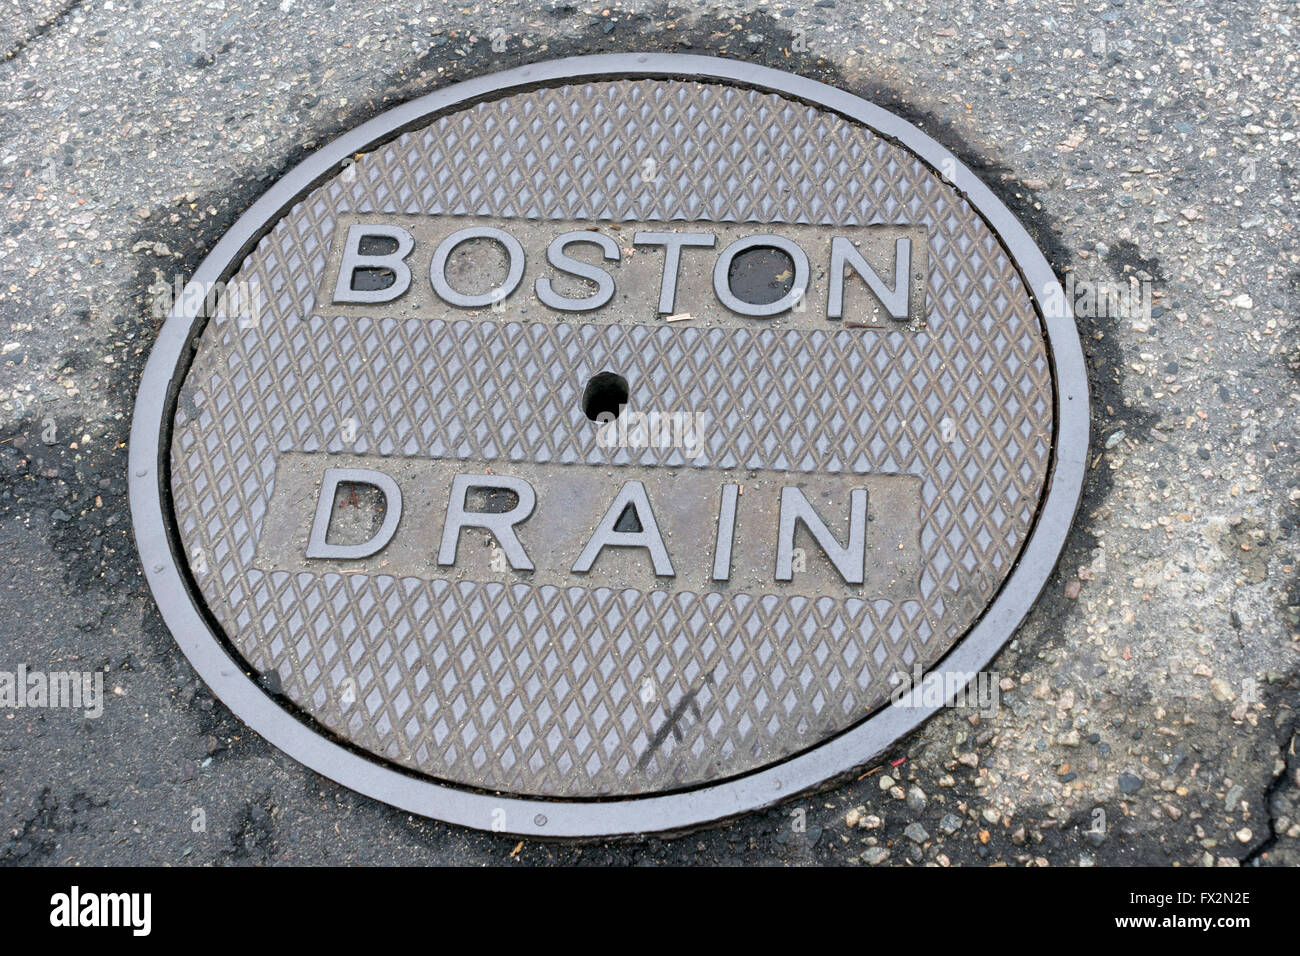 Manhole cover marked Boston Drain - Stock Image